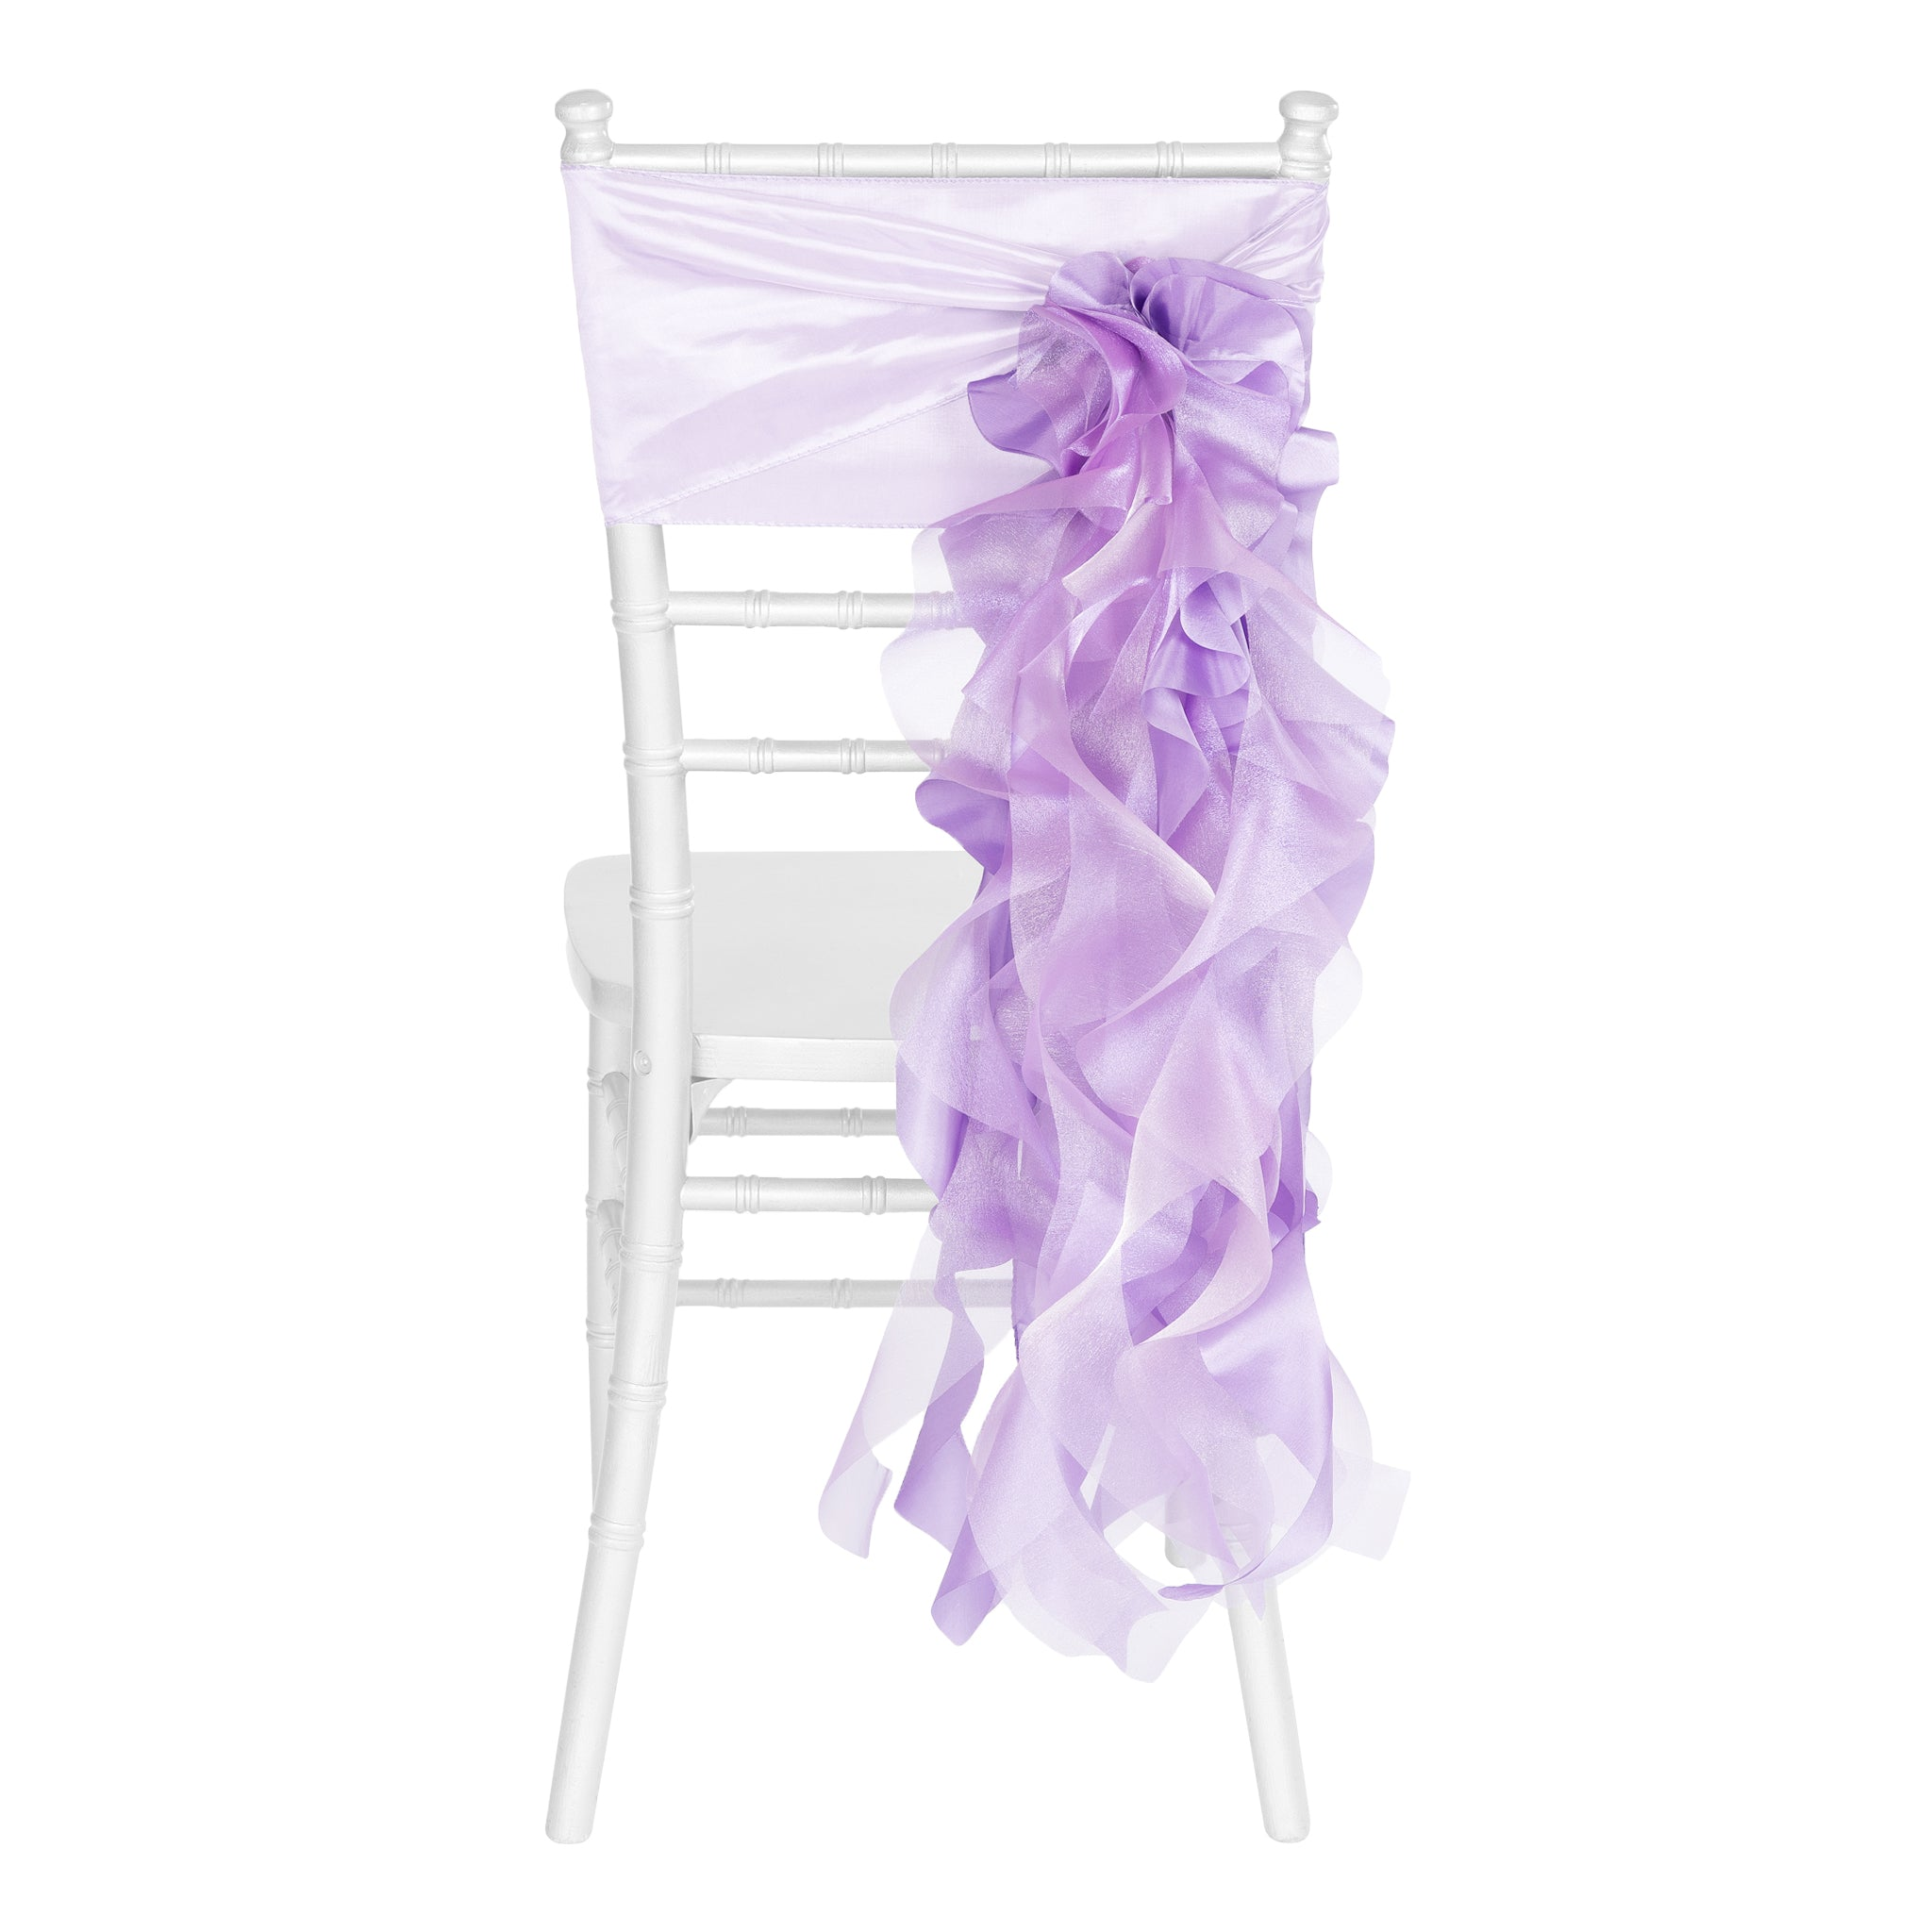 Curly Willow Chair Sash - Victorian Lilac/Wisteria- CV Linens